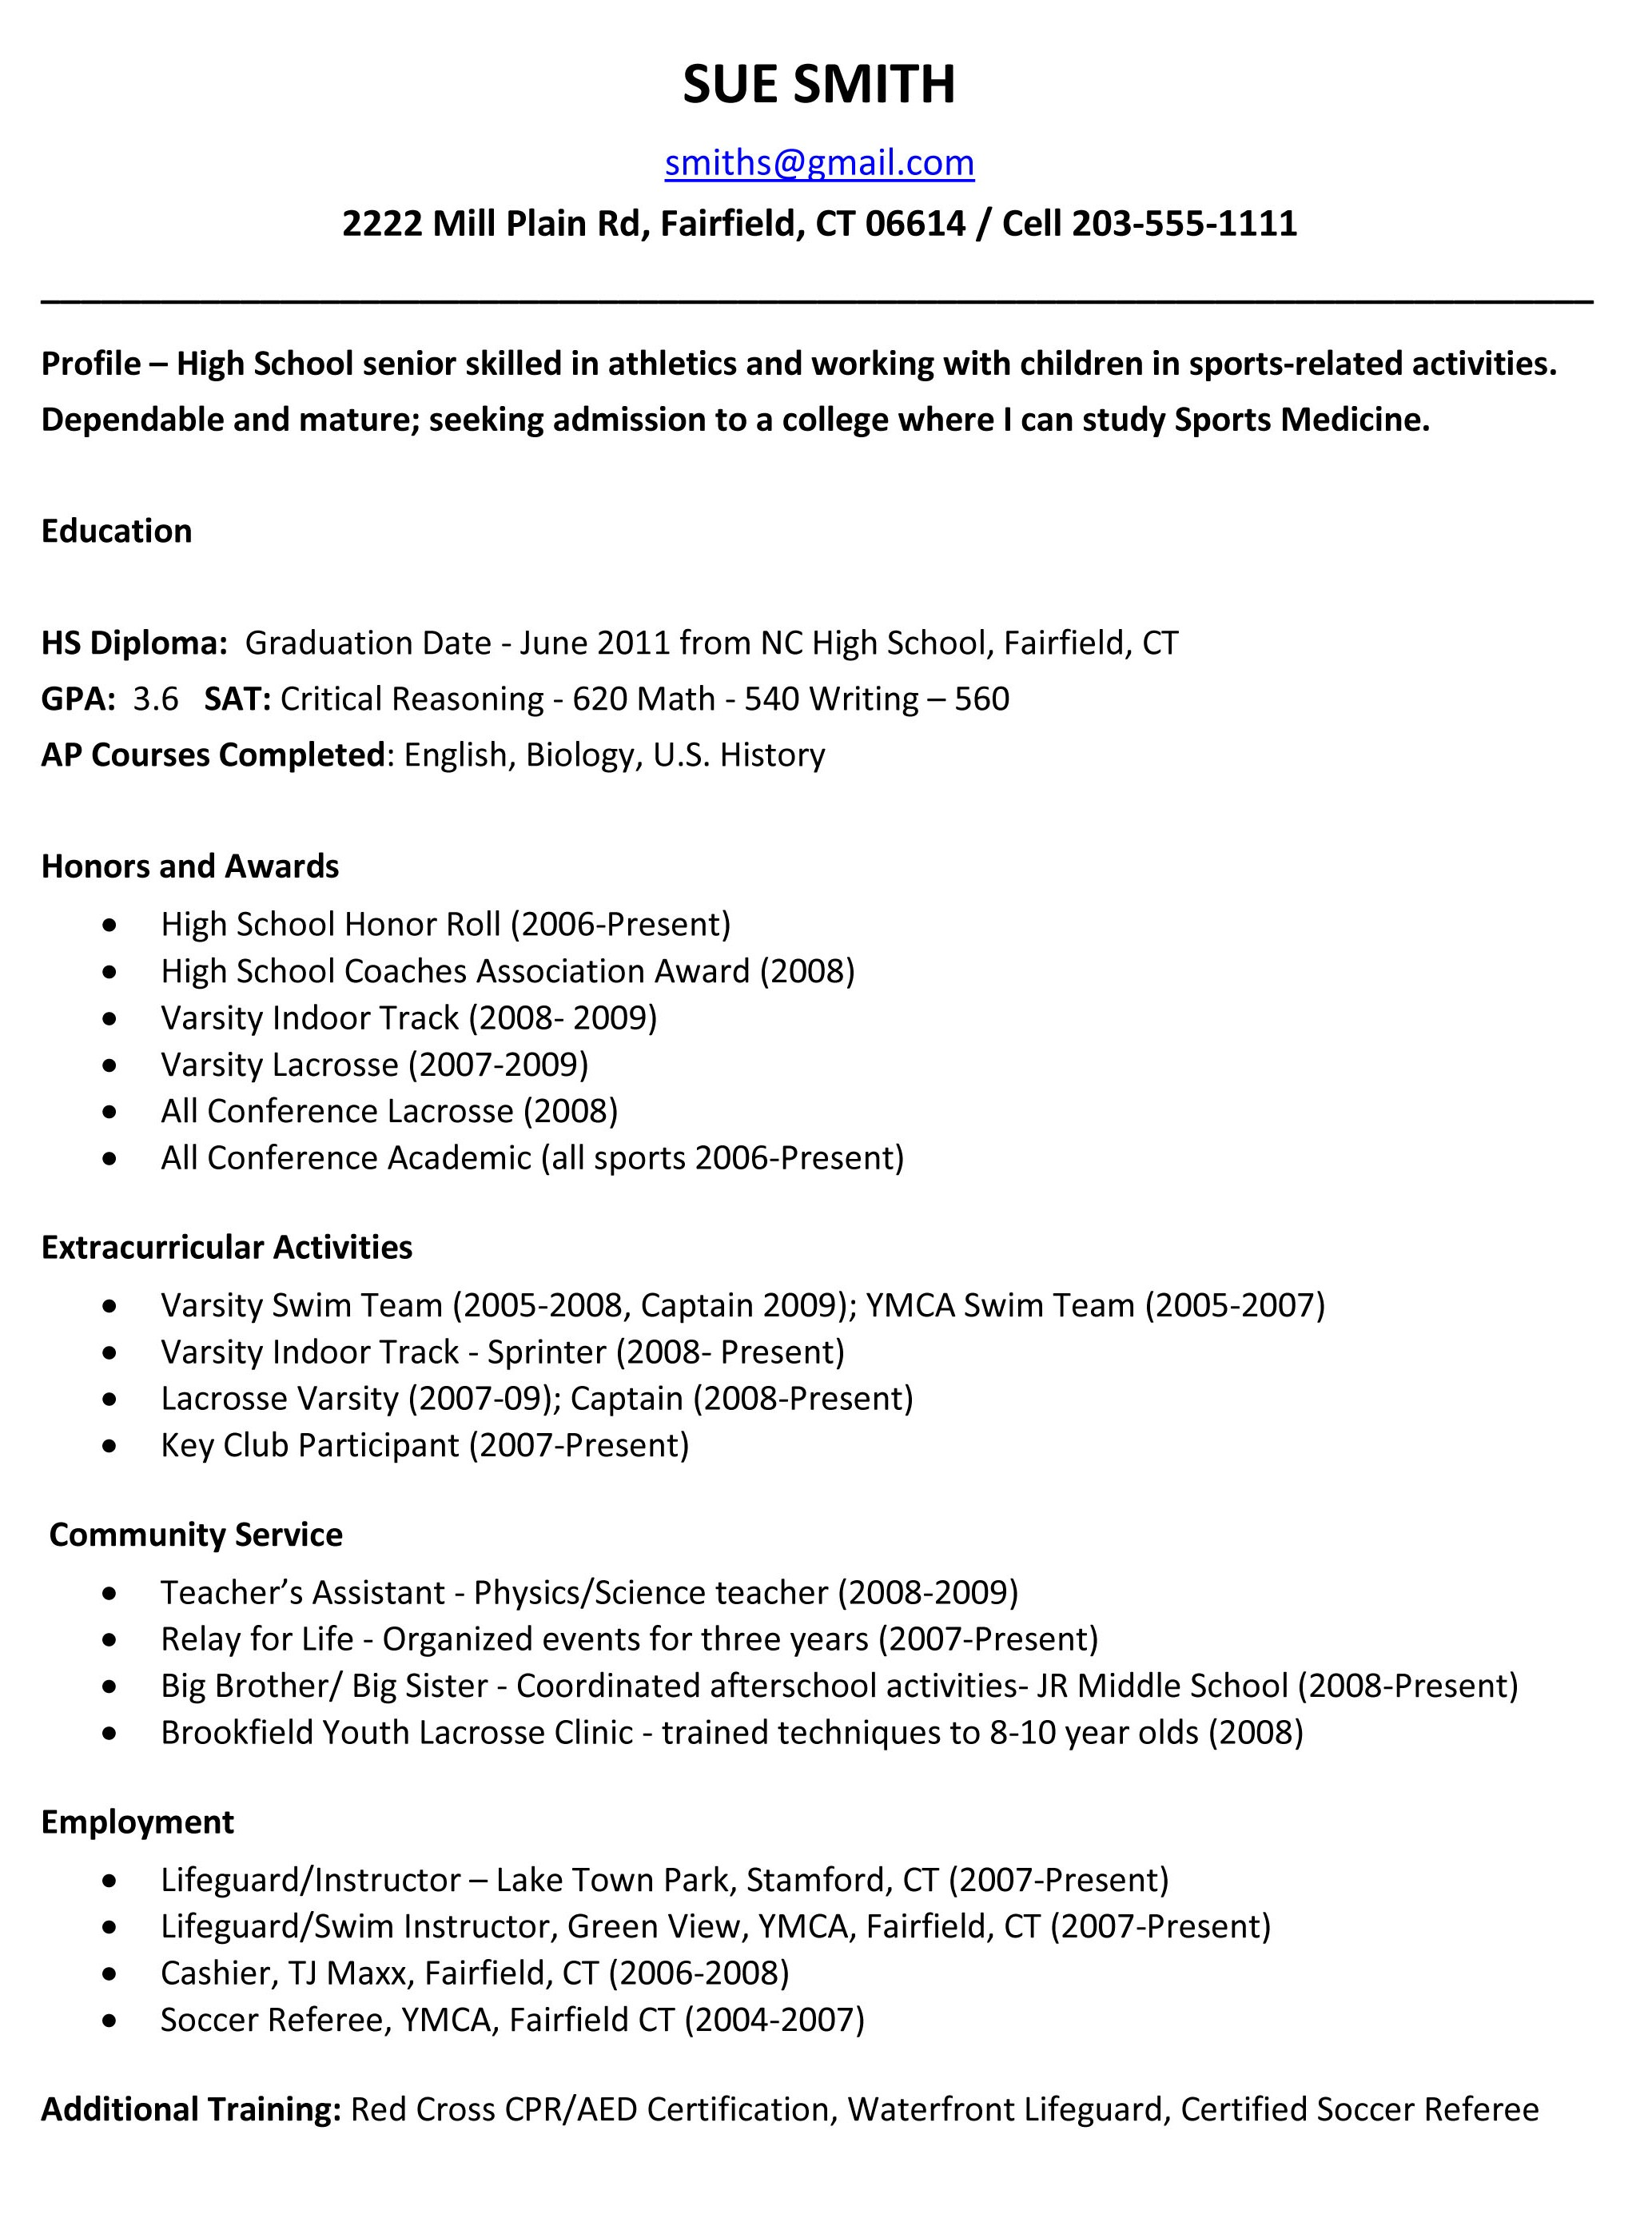 How To Write A High School Resume For College 0 Example Students